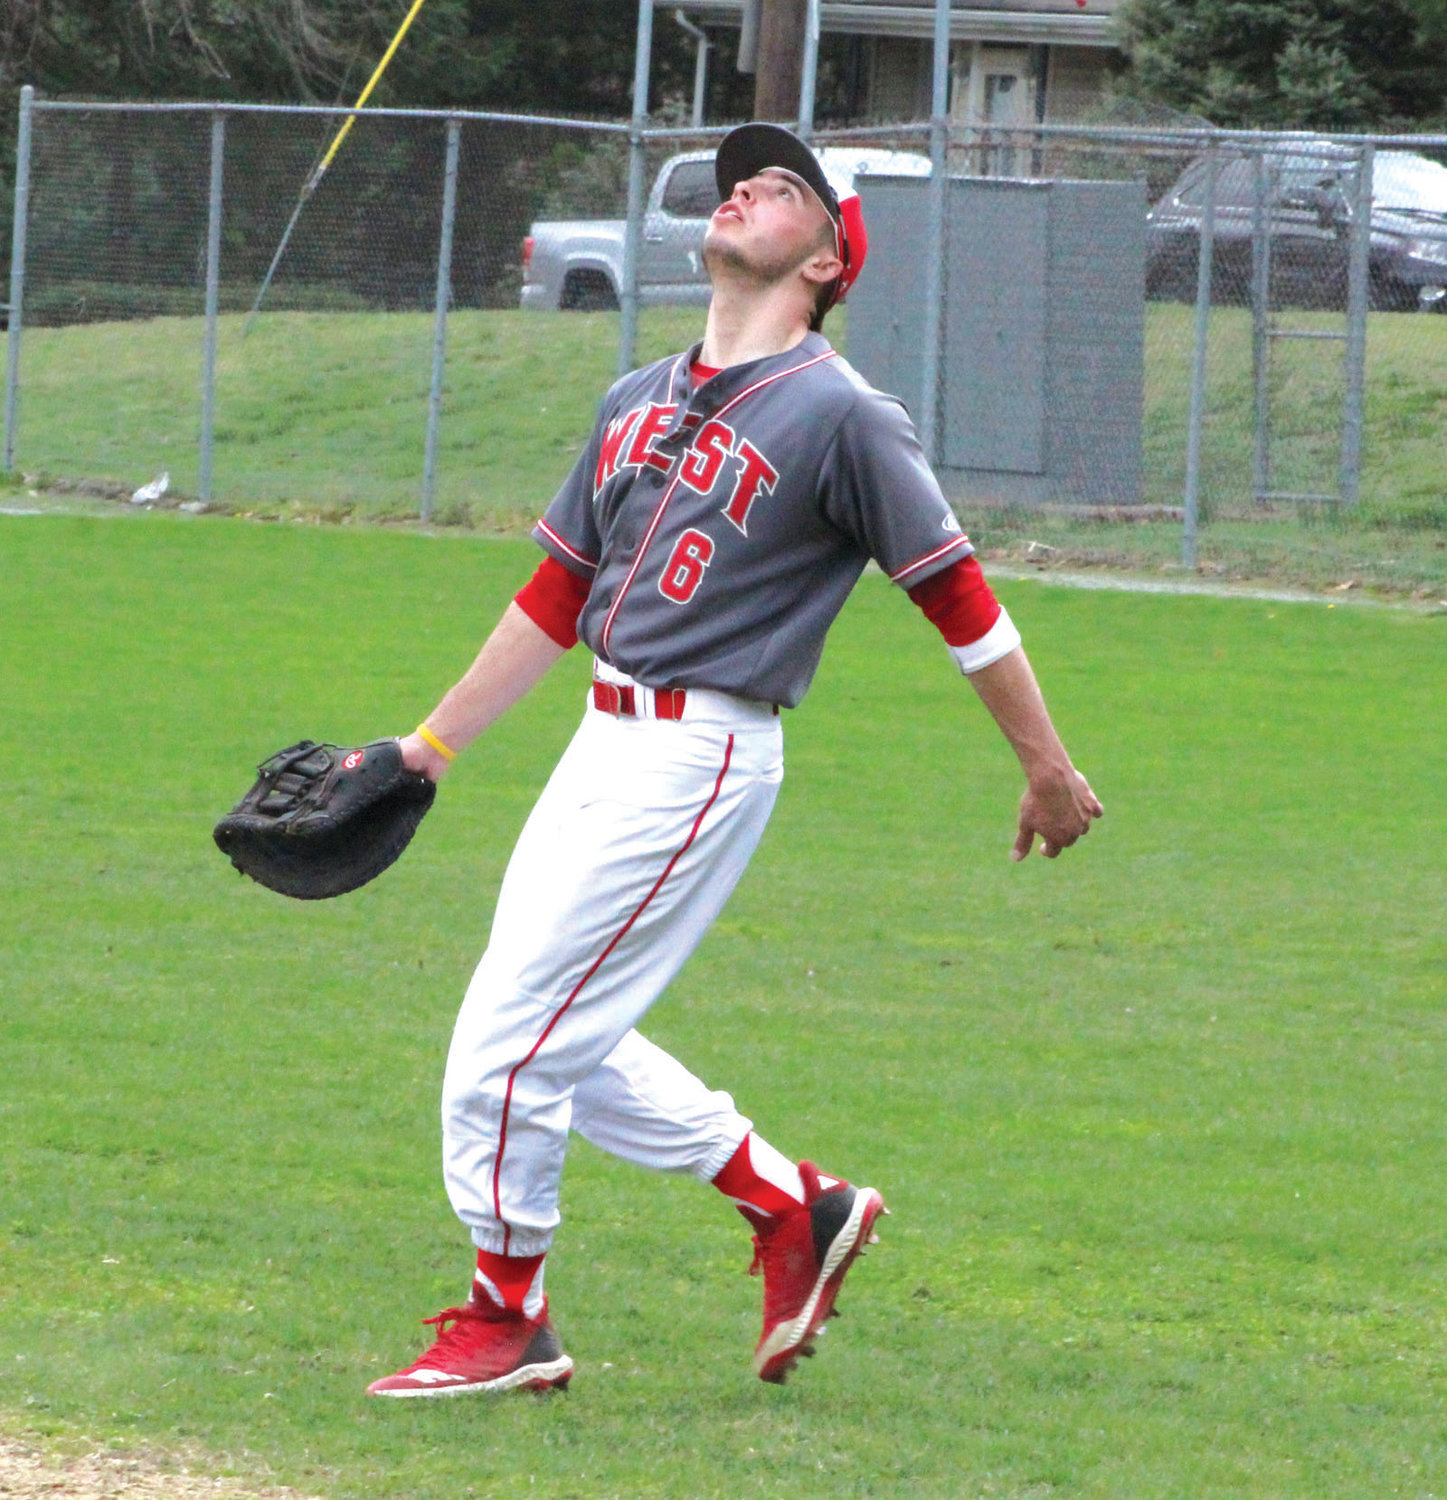 PLAYING THE FIELD: Cranston West first baseman Evan Smith tracks a fly ball last week against Johnston.